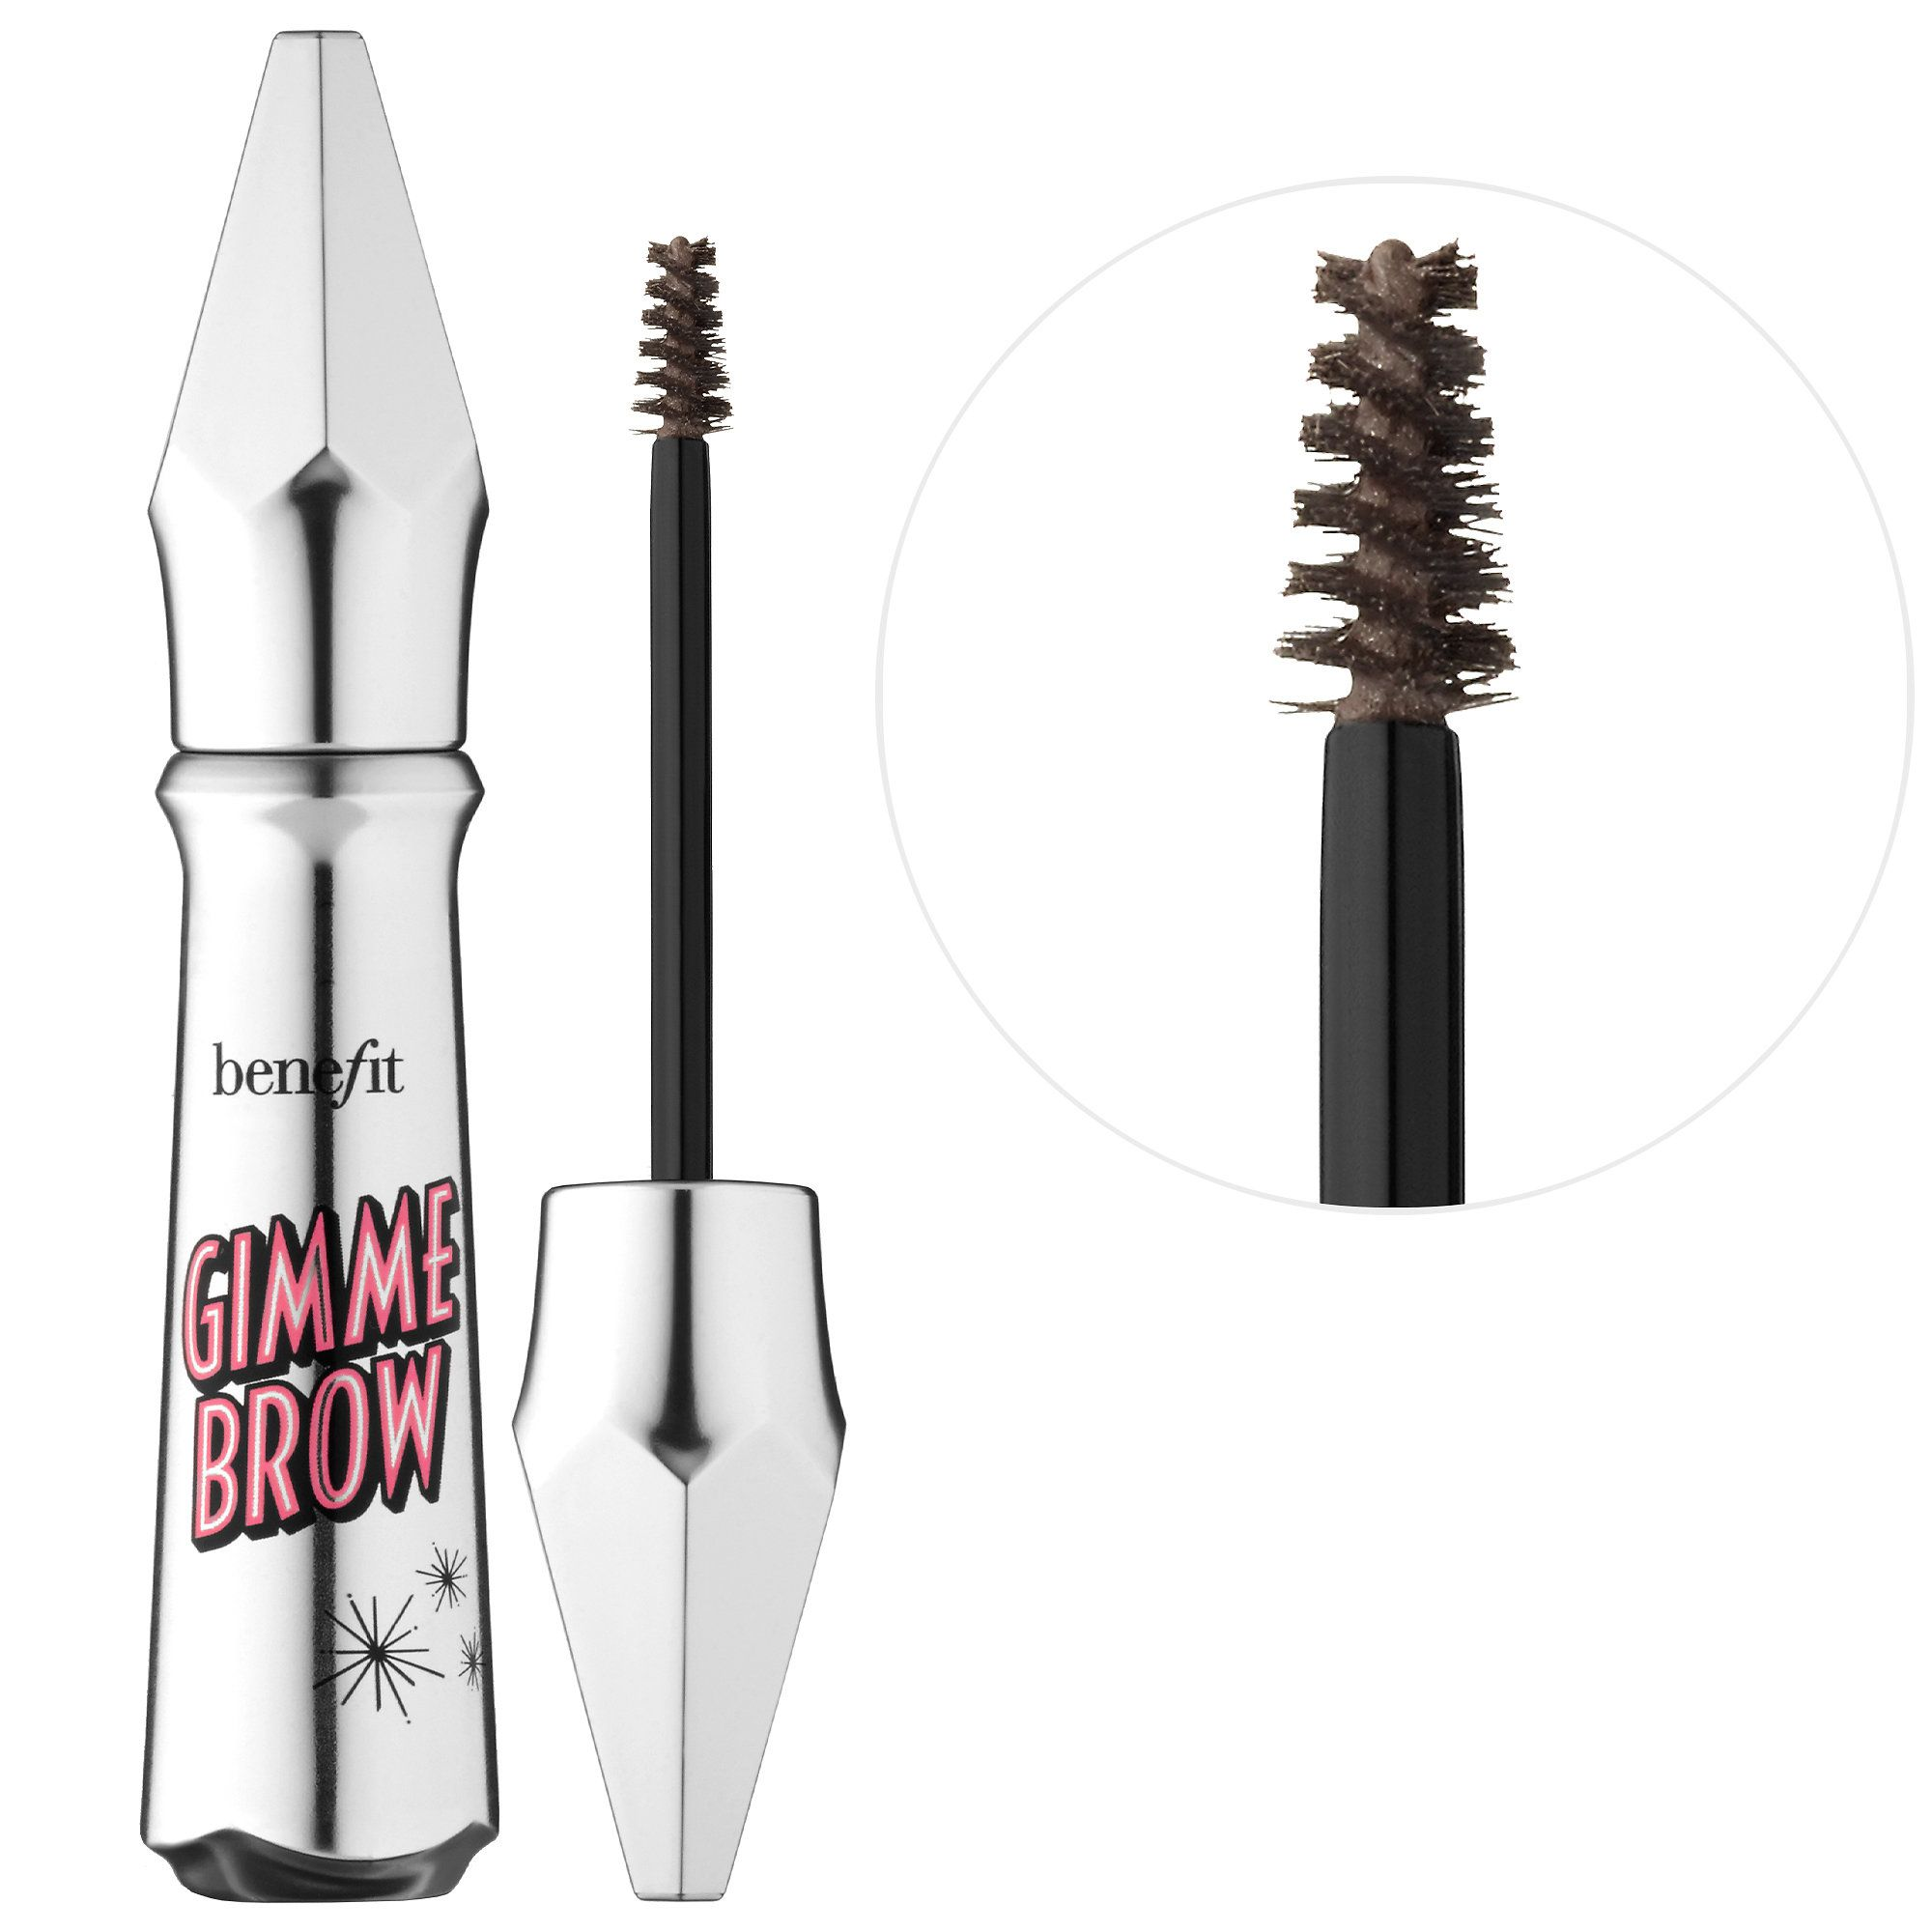 "<p><strong data-redactor-tag=""strong"" data-verified=""redactor""><em data-redactor-tag=""em"" data-verified=""redactor"">$24</em></strong> <a href=""http://www.sephora.com/gimme-brow-P409239?"" target=""_blank"" class=""slide-buy--button"" data-tracking-id=""recirc-text-link"">BUY NOW</a></p><p>If you aren't confident in your ability to create a perfect brow, just stick to Benefit's grow gel instead. It's a super easy way to build your brow without needing to have any sort of shading or brush skills. You just brush it upwards on your brows and the tiny fibers will adhere to your brows, giving them a fuller look and shape. </p>"